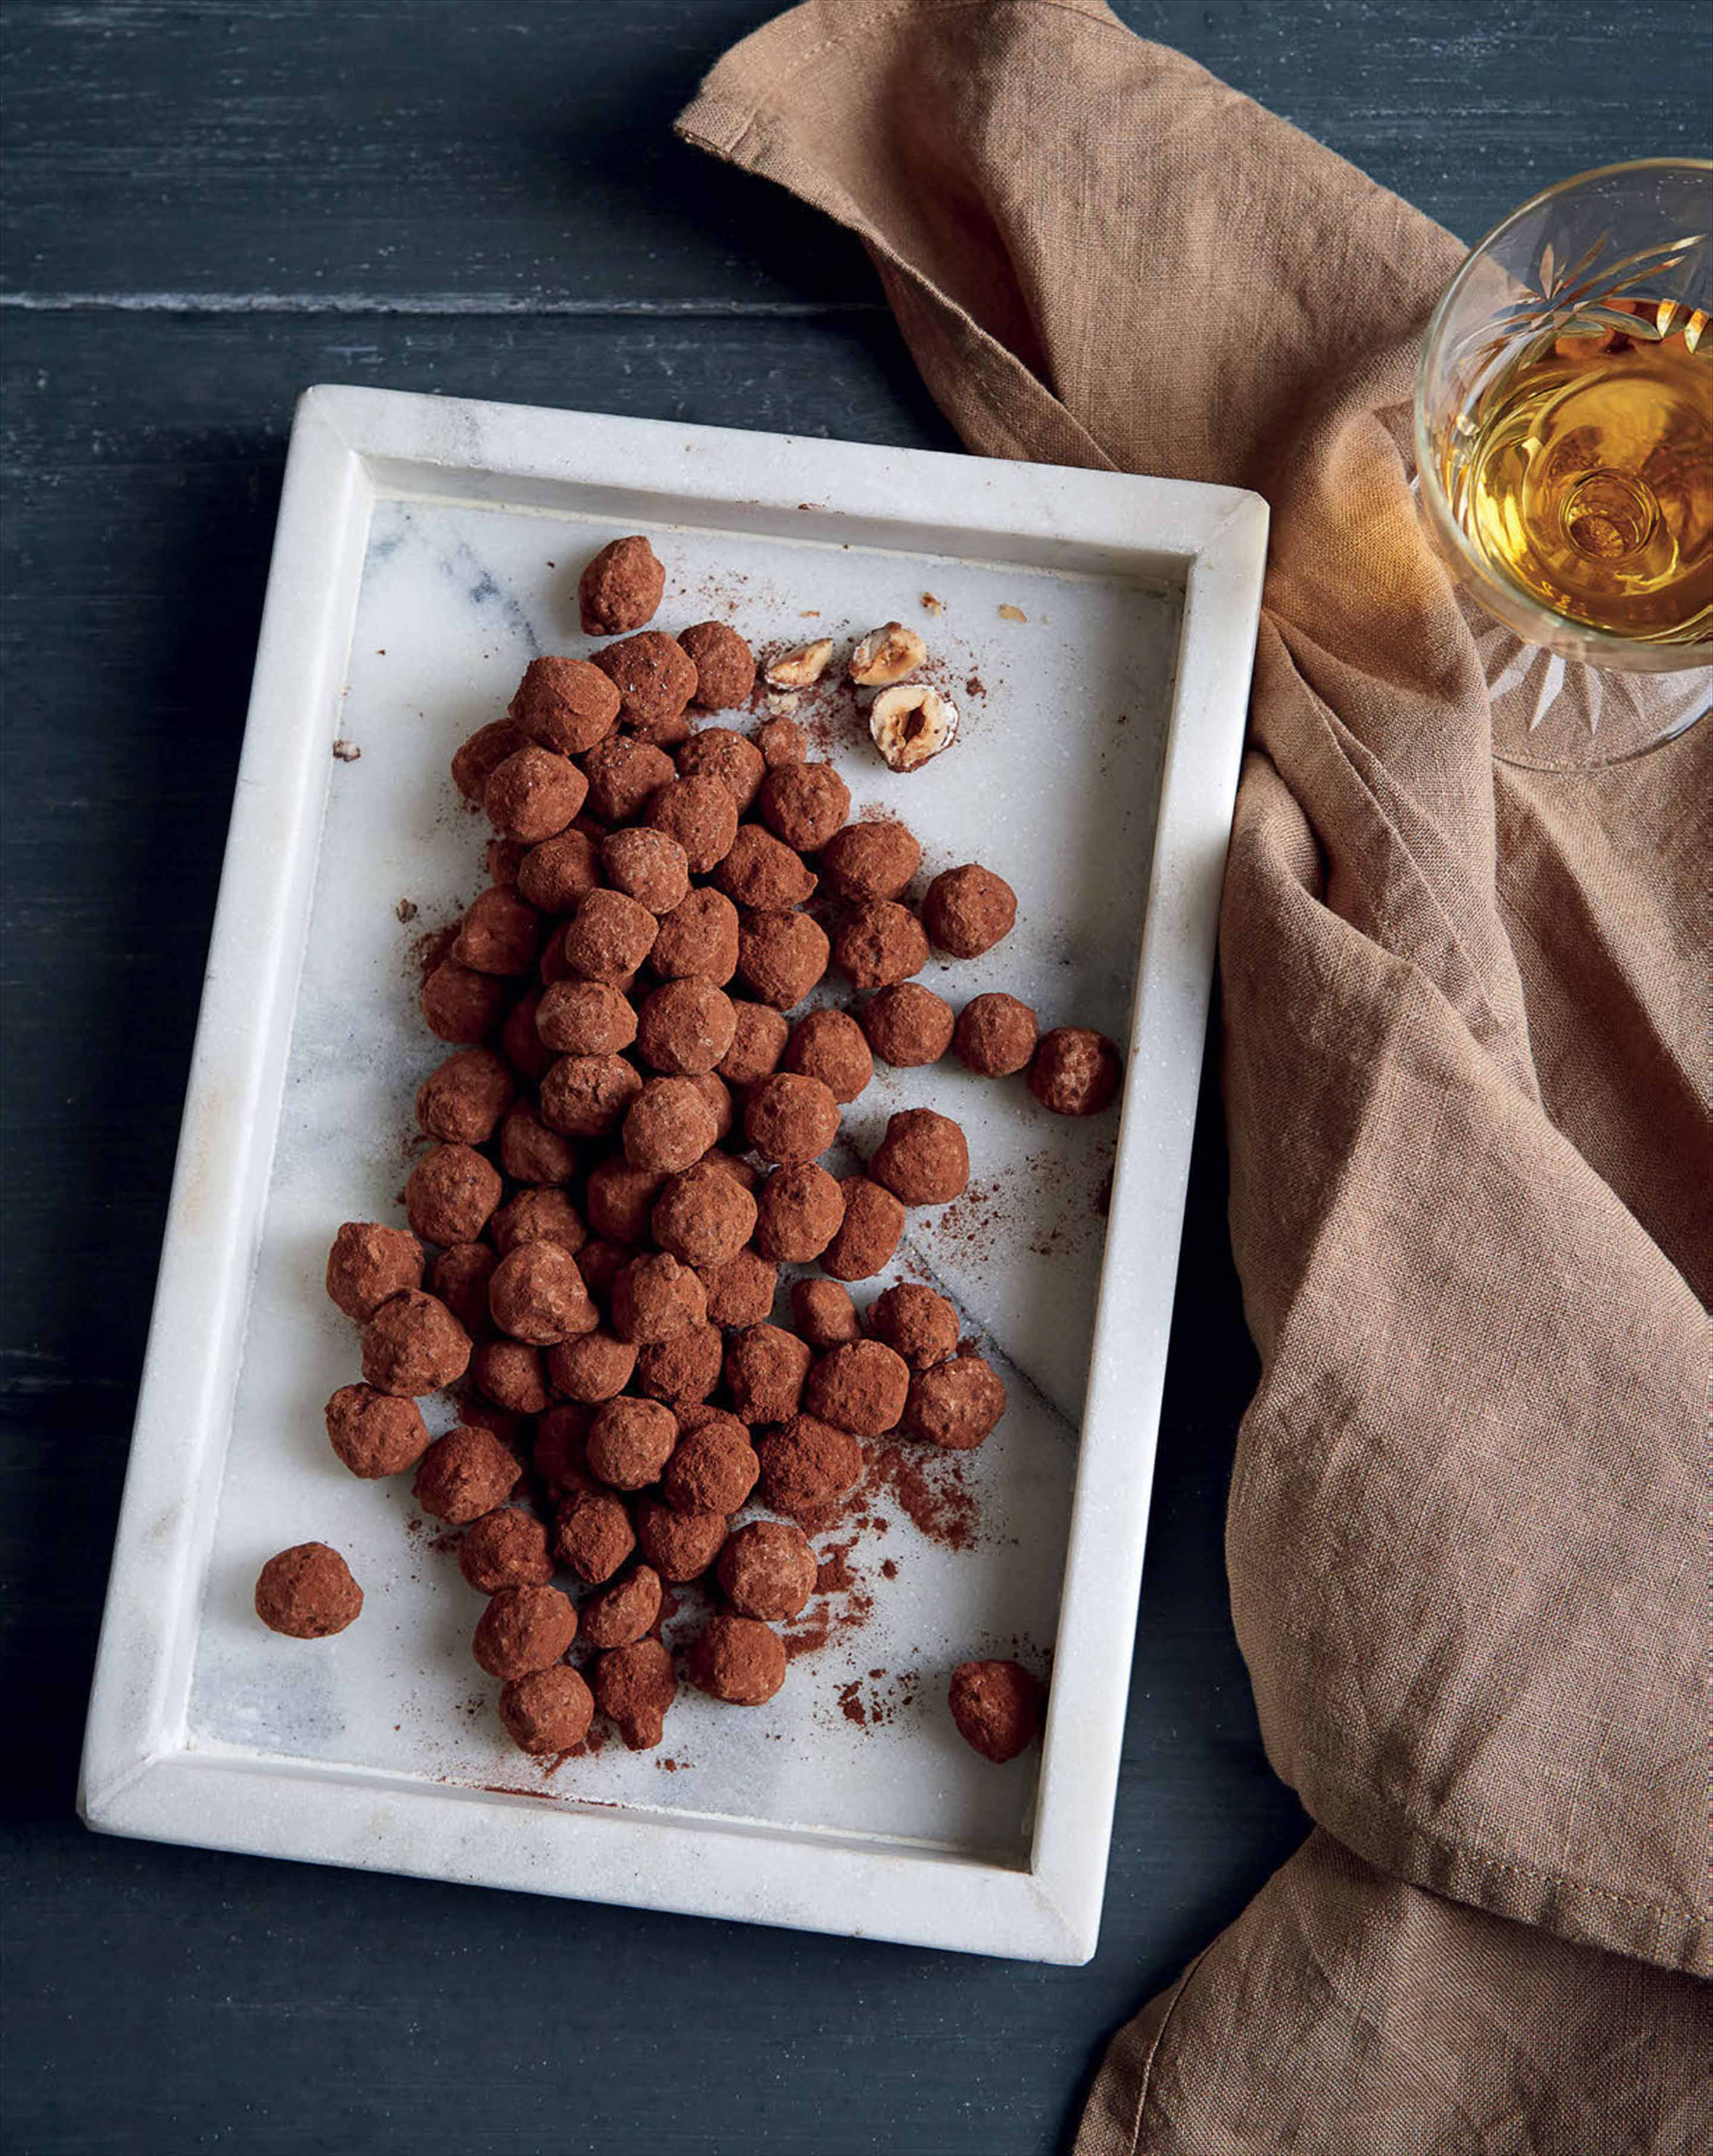 Chocolate-coated caramelised hazelnuts